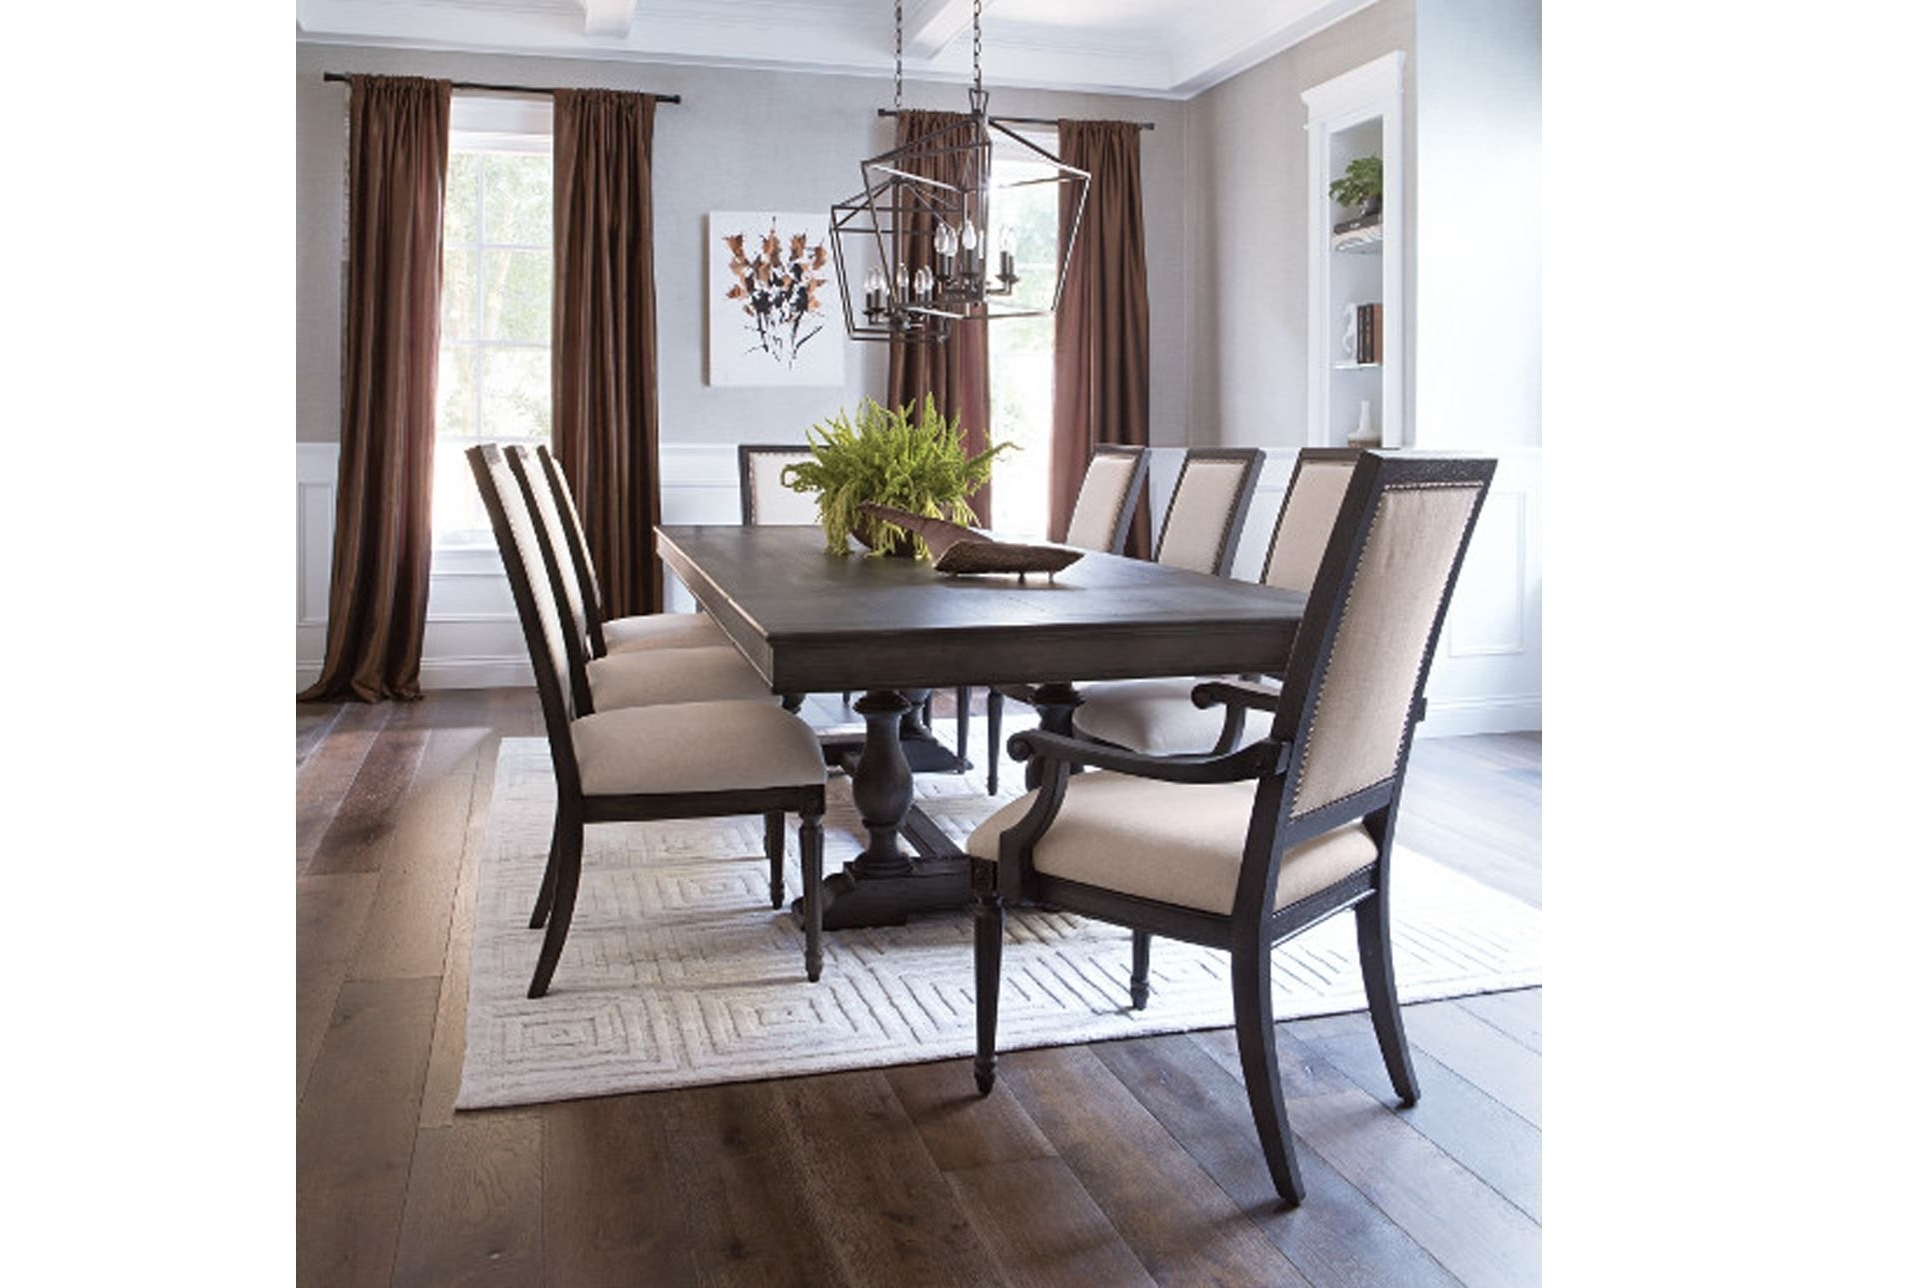 Chapleau Ii Extension Dining Tables In Popular Chapleau 9 Piece Extension Dining Set, Off White (View 7 of 25)